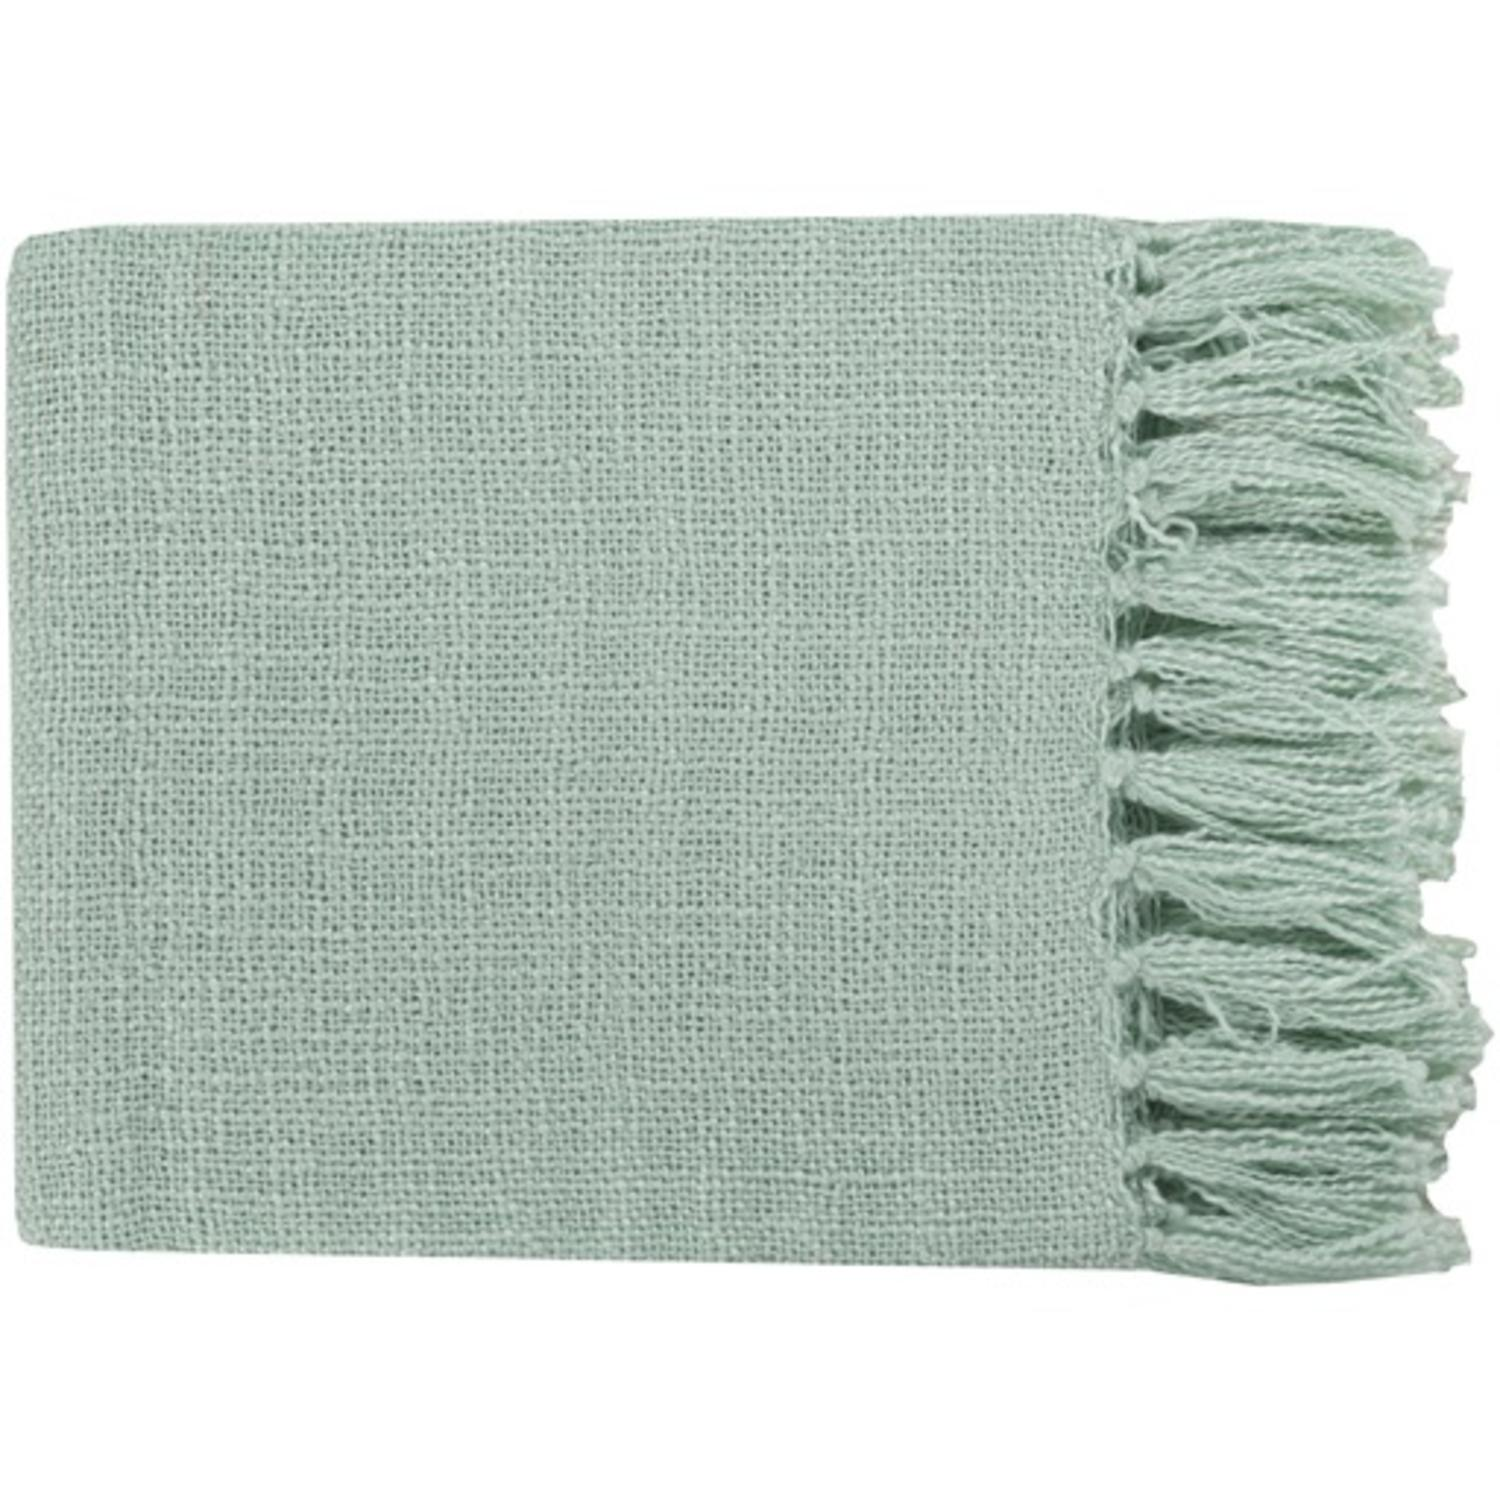 "59"" x 51"" Warm Weaves Mint Green Fringed Throw Blanket"